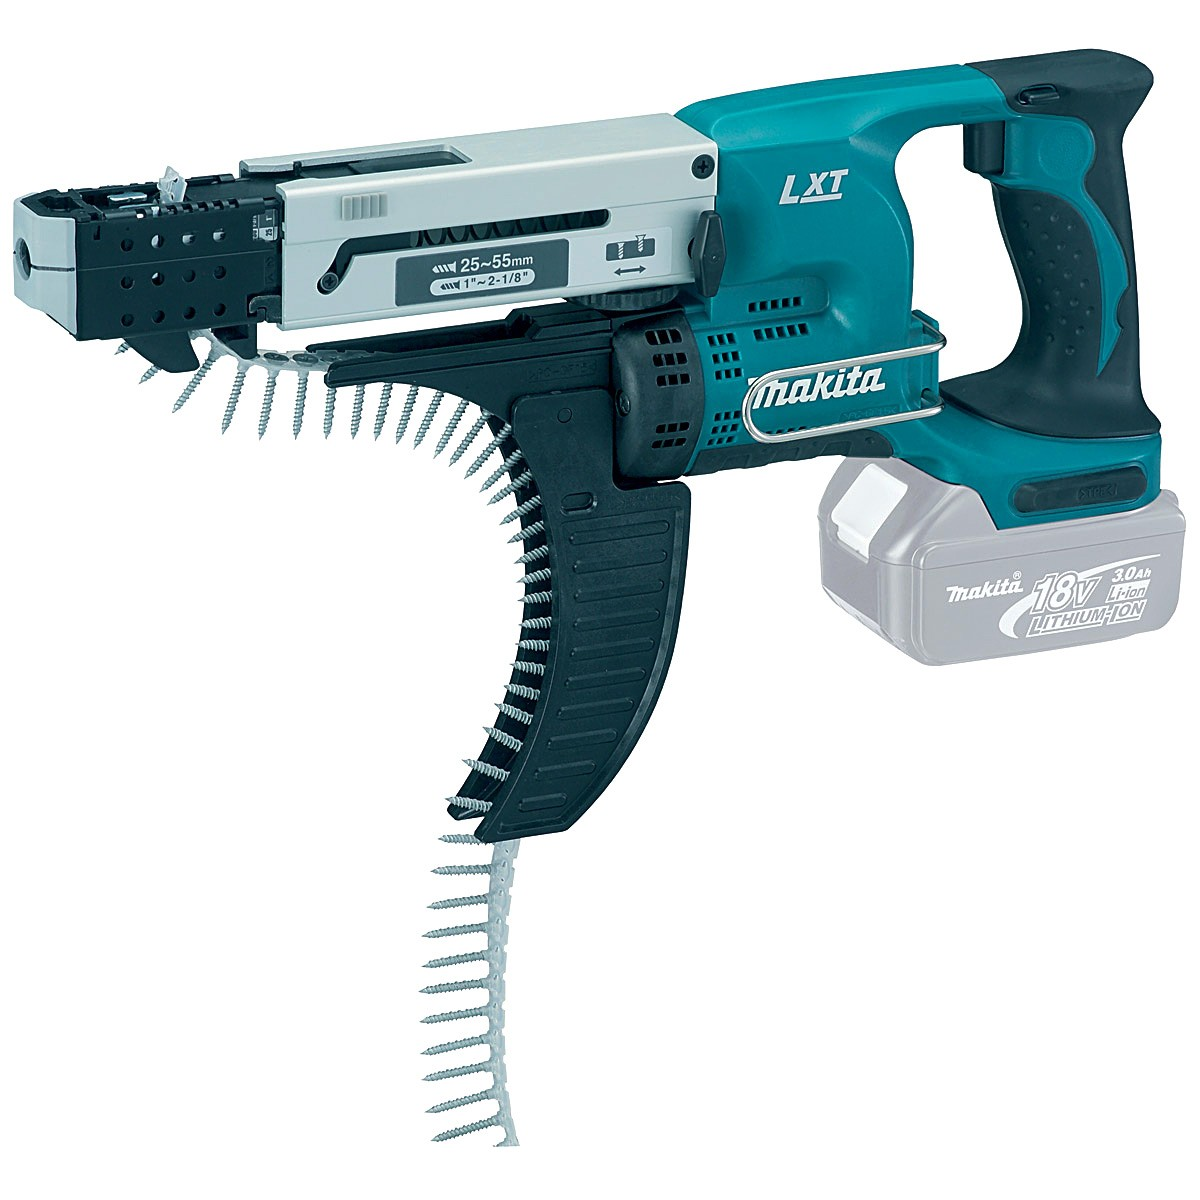 Makita DFR550Z LXT 18v Cordless Auto Feed Screwdriver Body Only